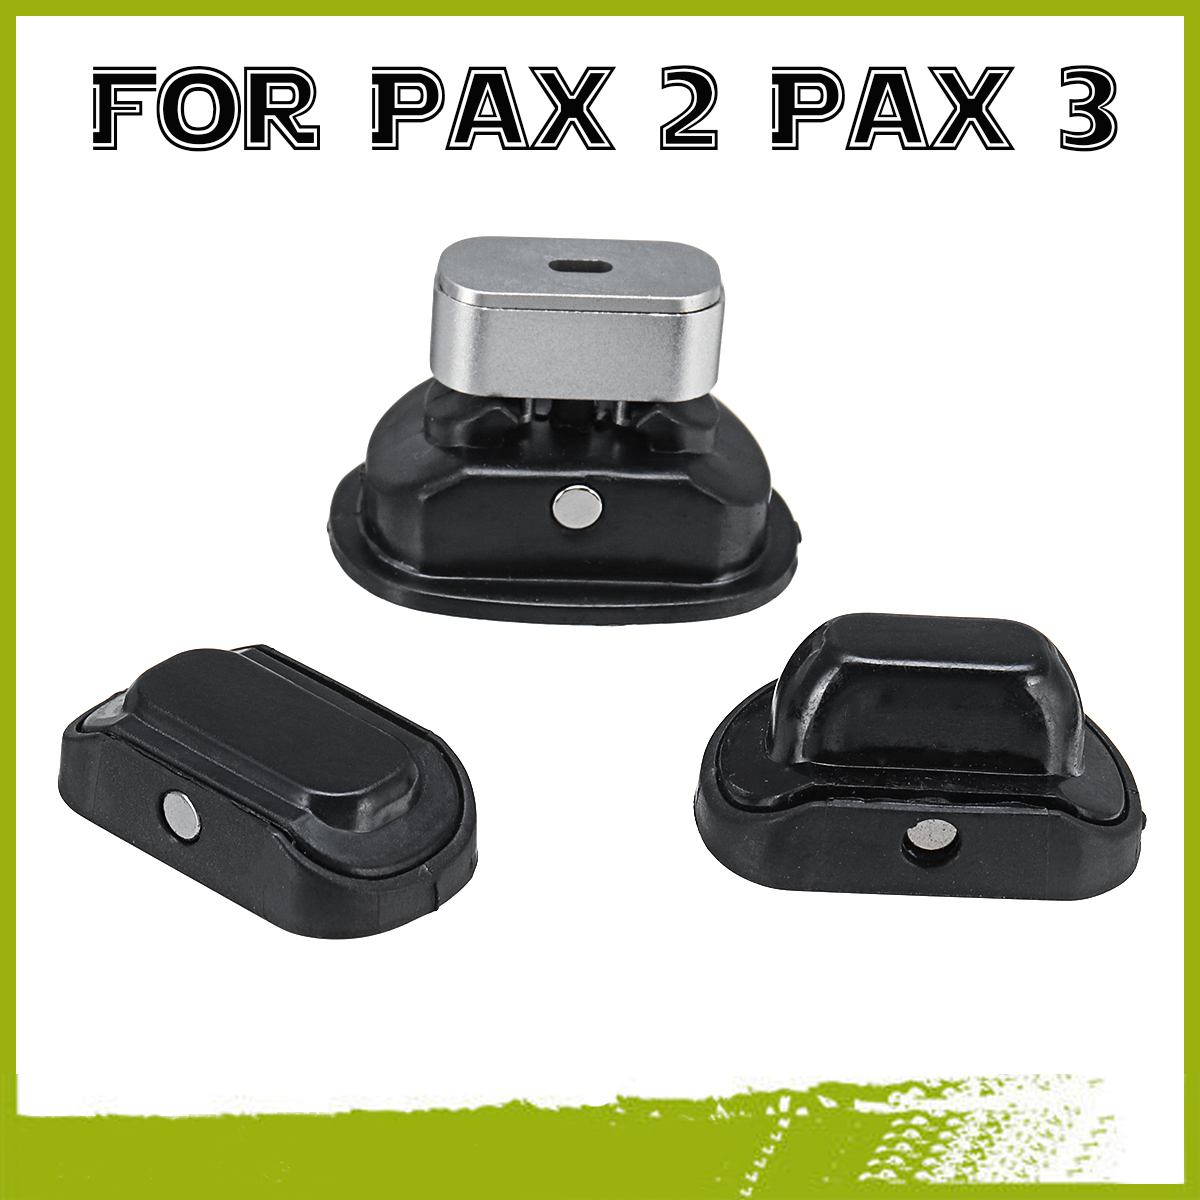 Hot Replacement Magnetic Oven Lid & Half Pack Oven Lid for PAX2 PA X3 Insert Smart Home Building Automation Vapor Clean Fresh